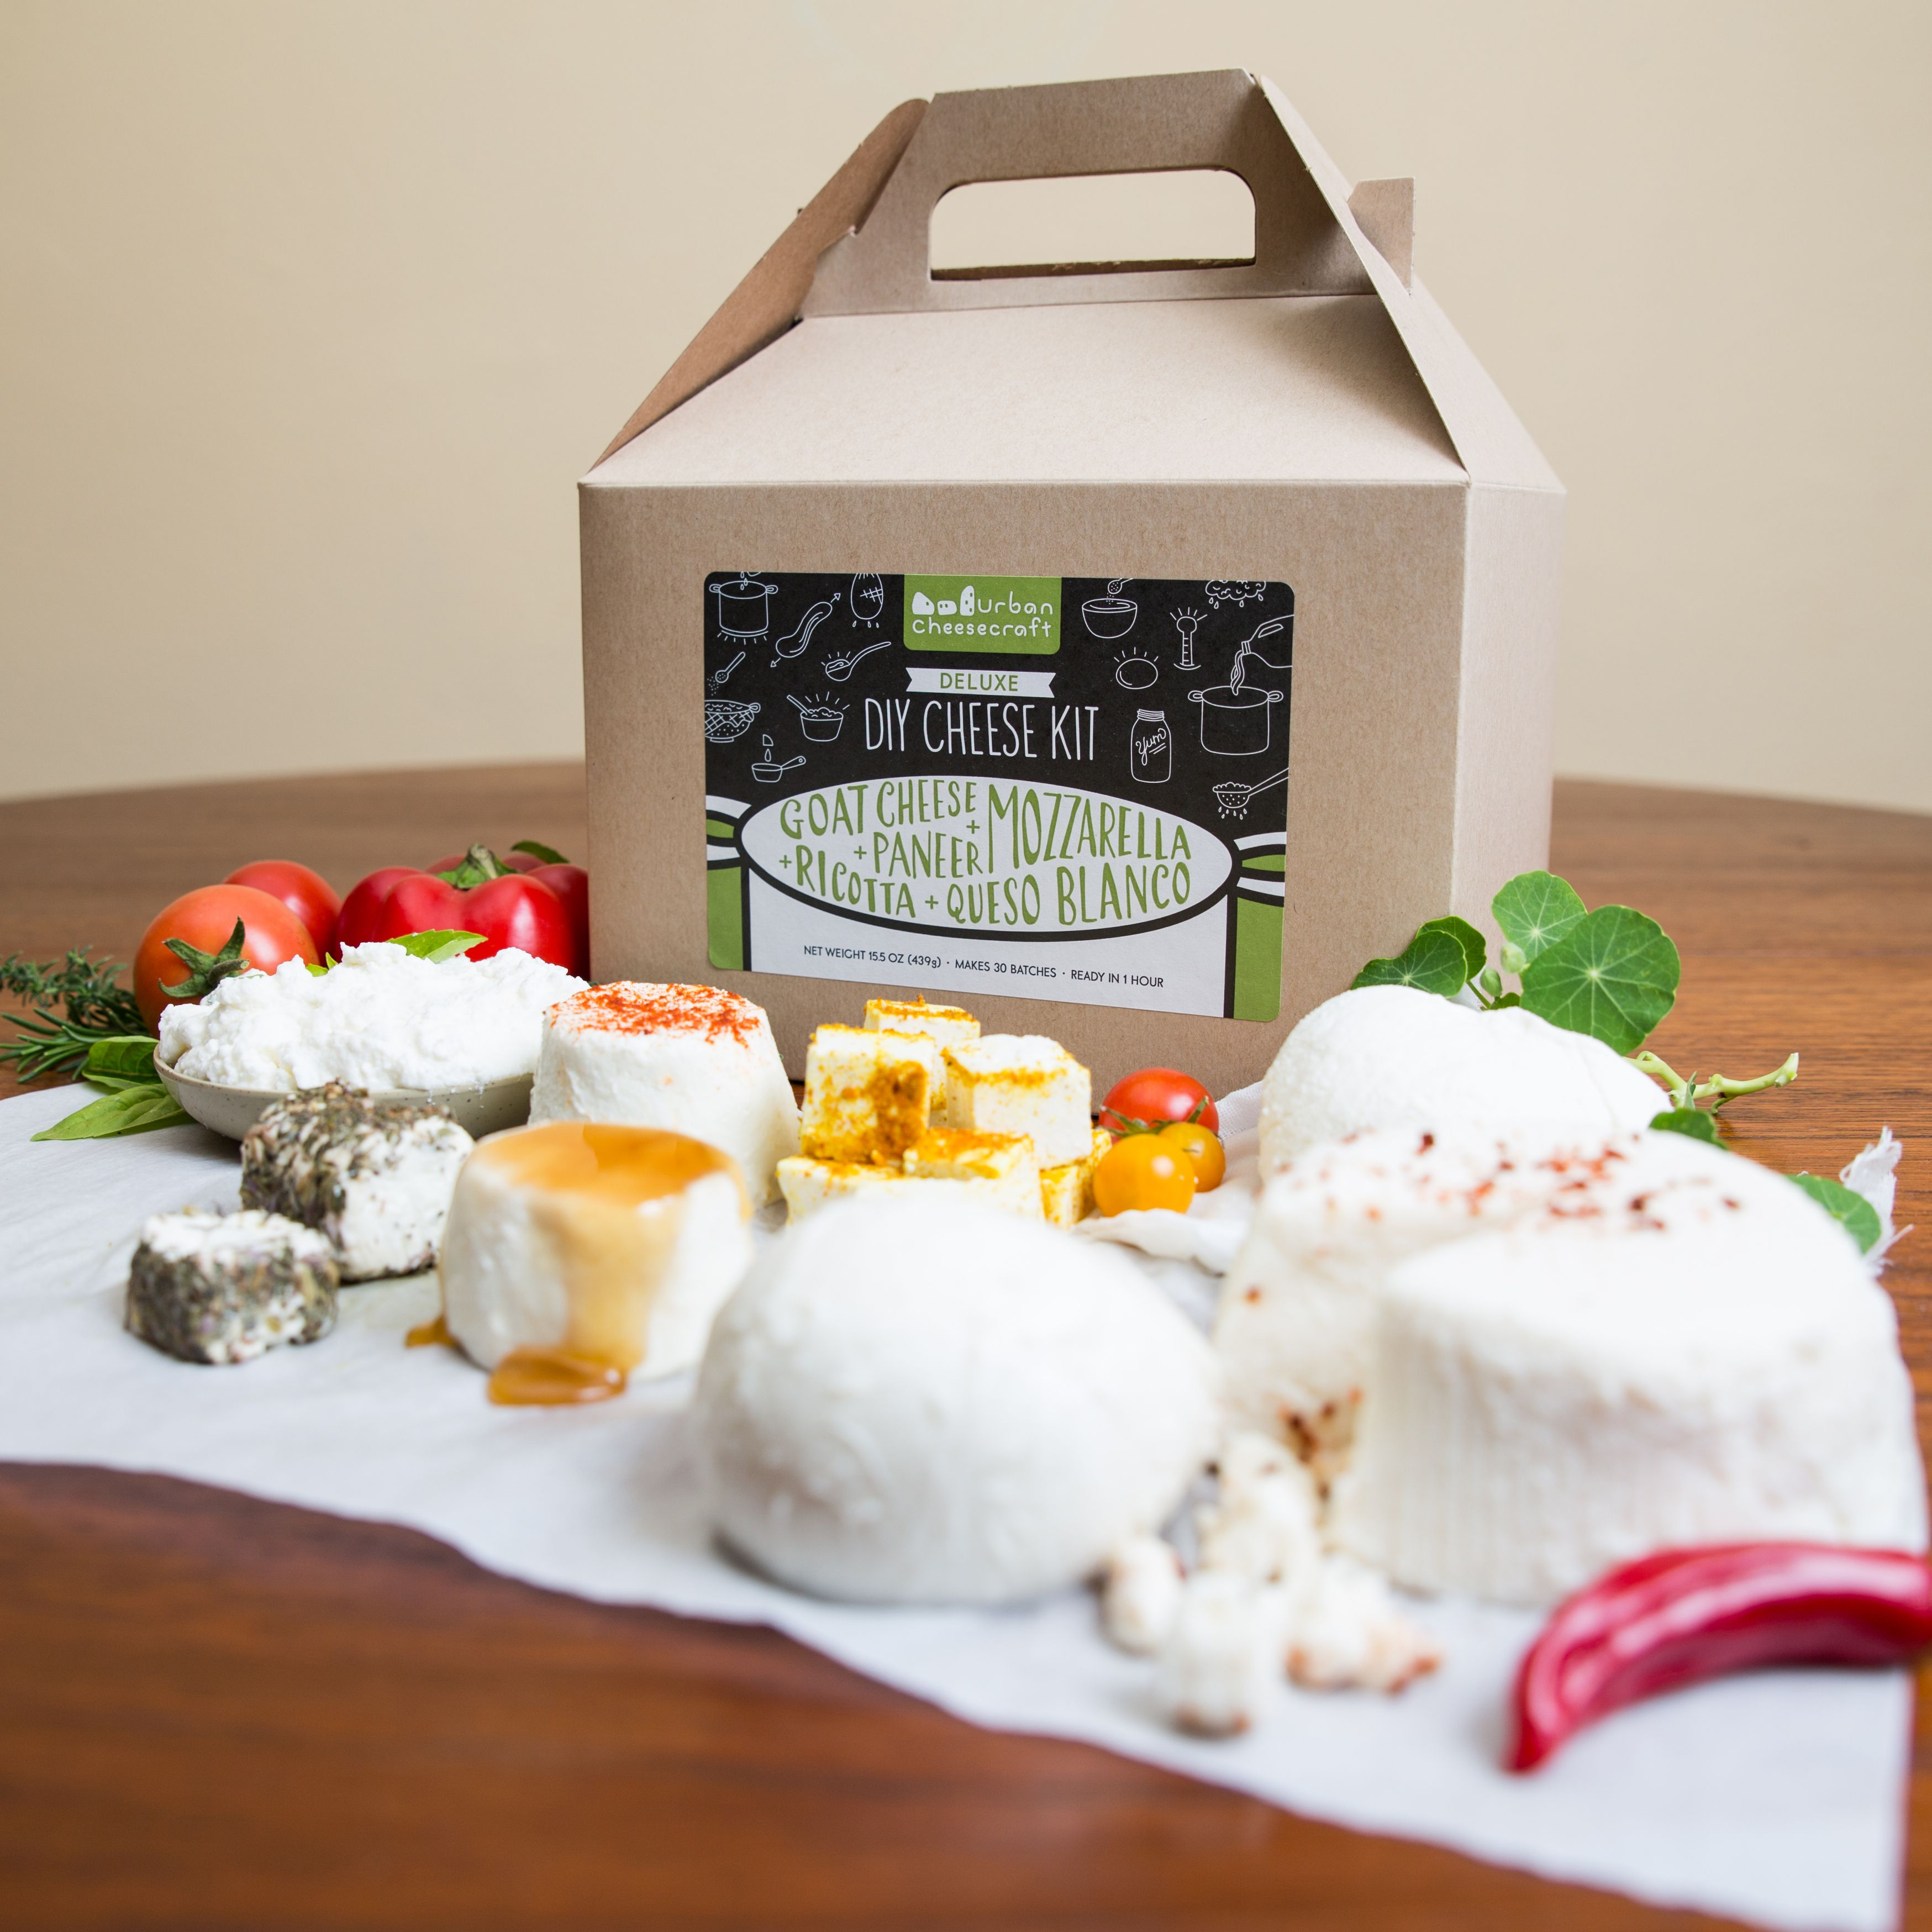 This Huge Kit Makes 5 Cheeses And Like Most Bulk Purchases It S More Economical It Is The Ultimate Starter Kit A Diy Cheese Cheese Making Kit Meal Kits Diy